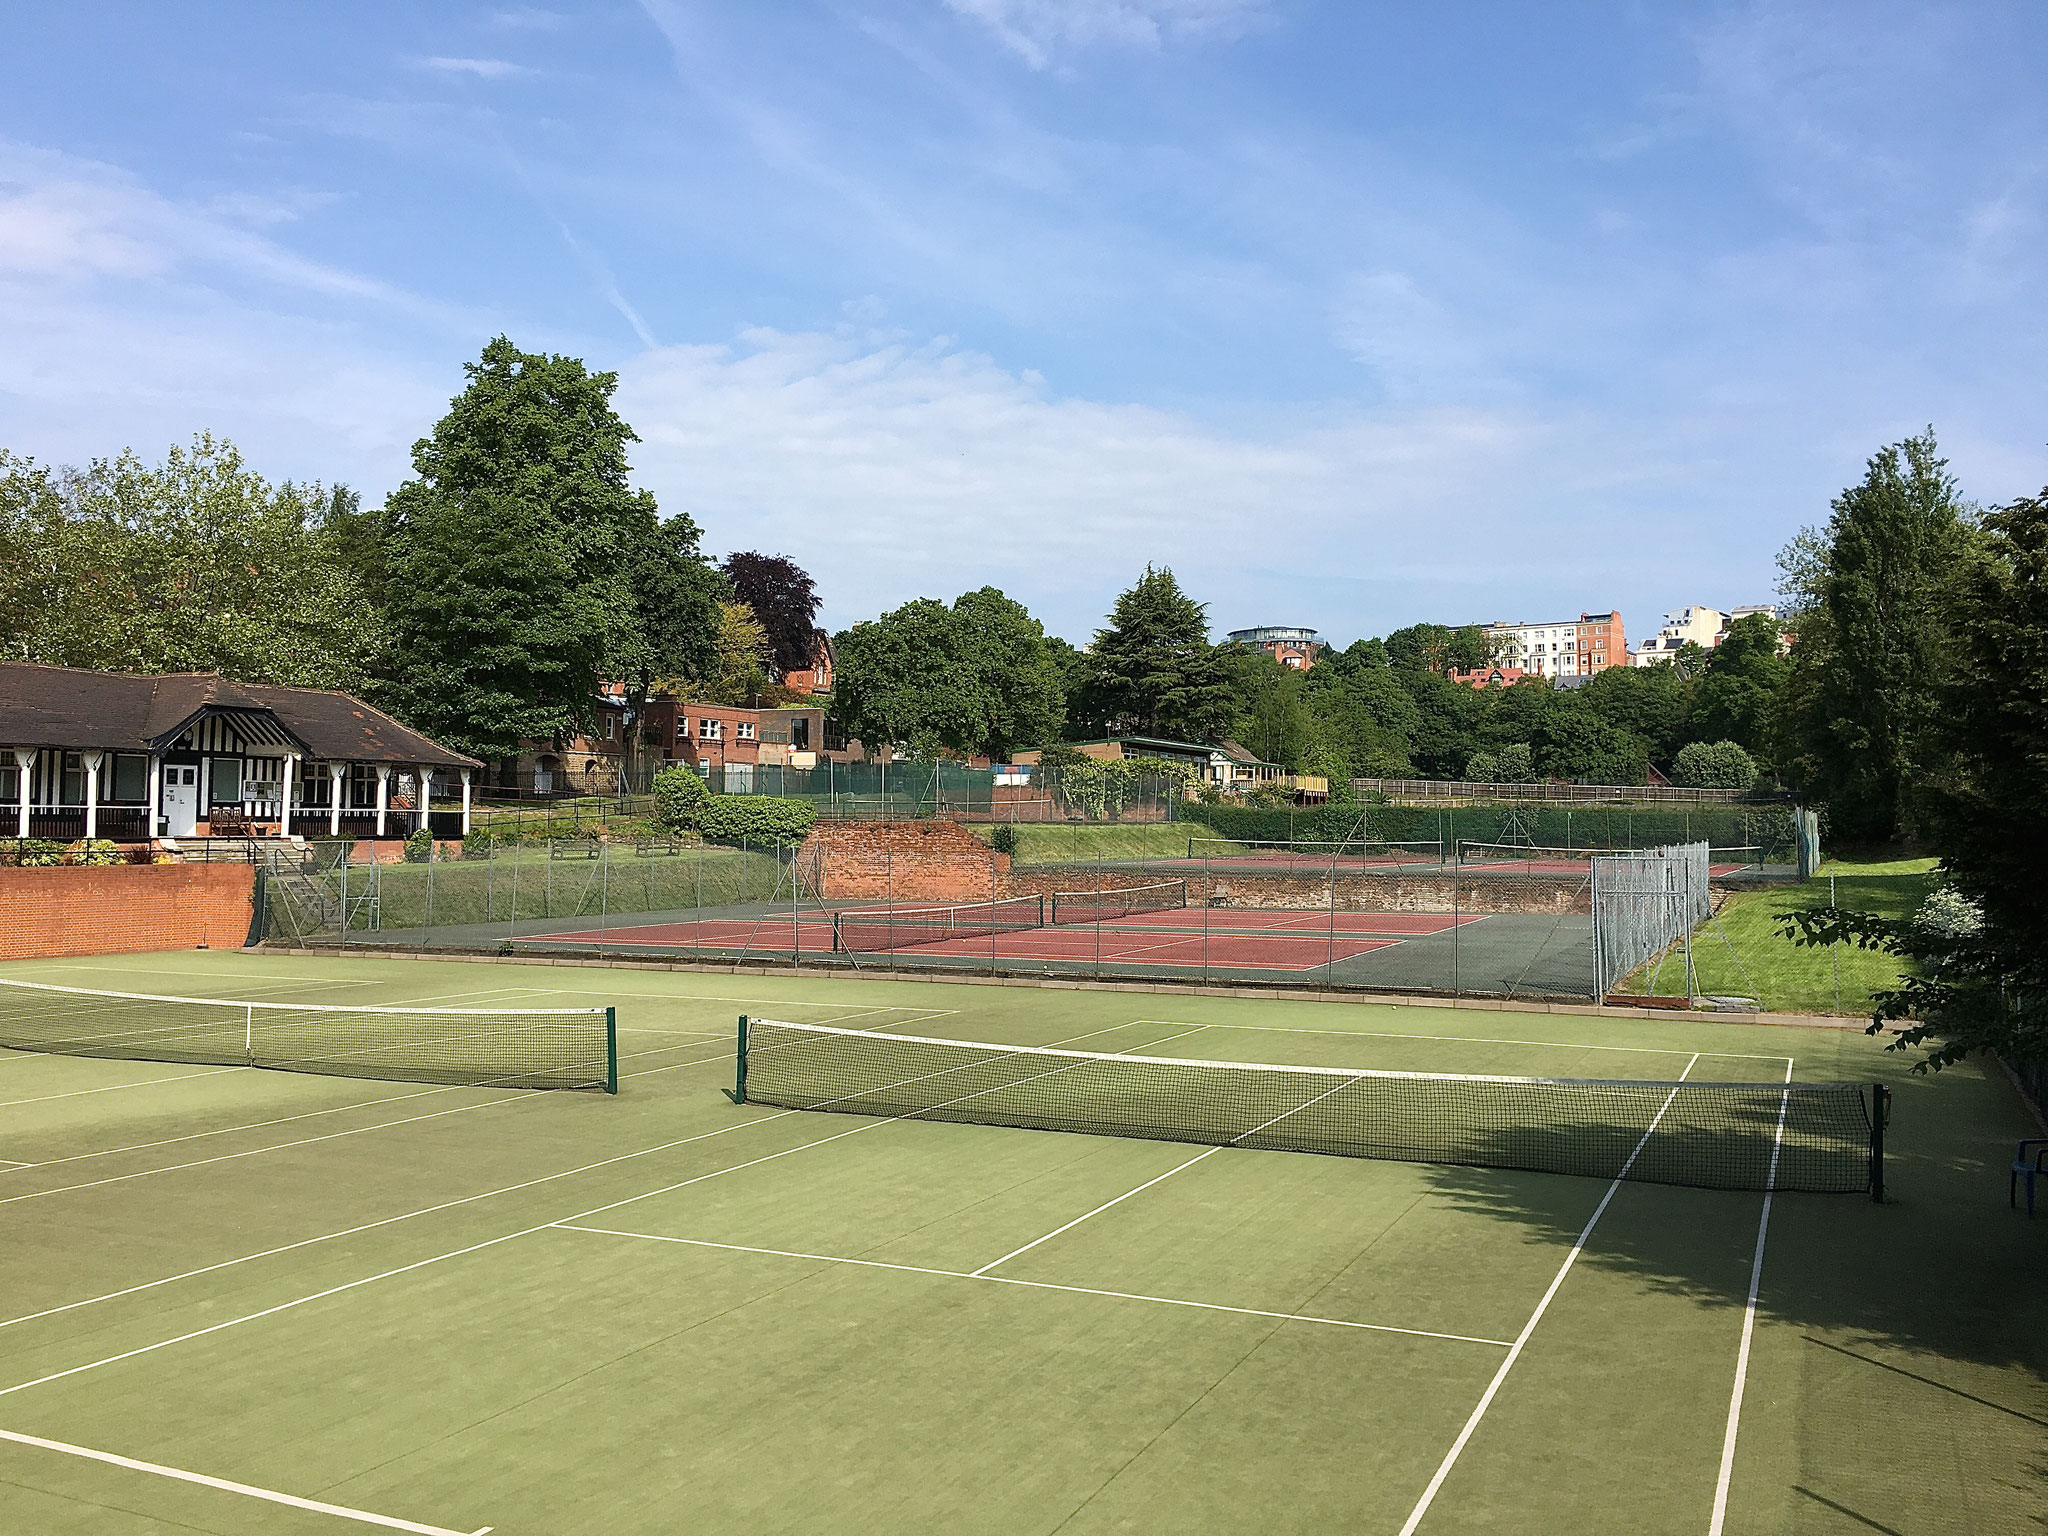 Nottingham Lawn Tennis Club